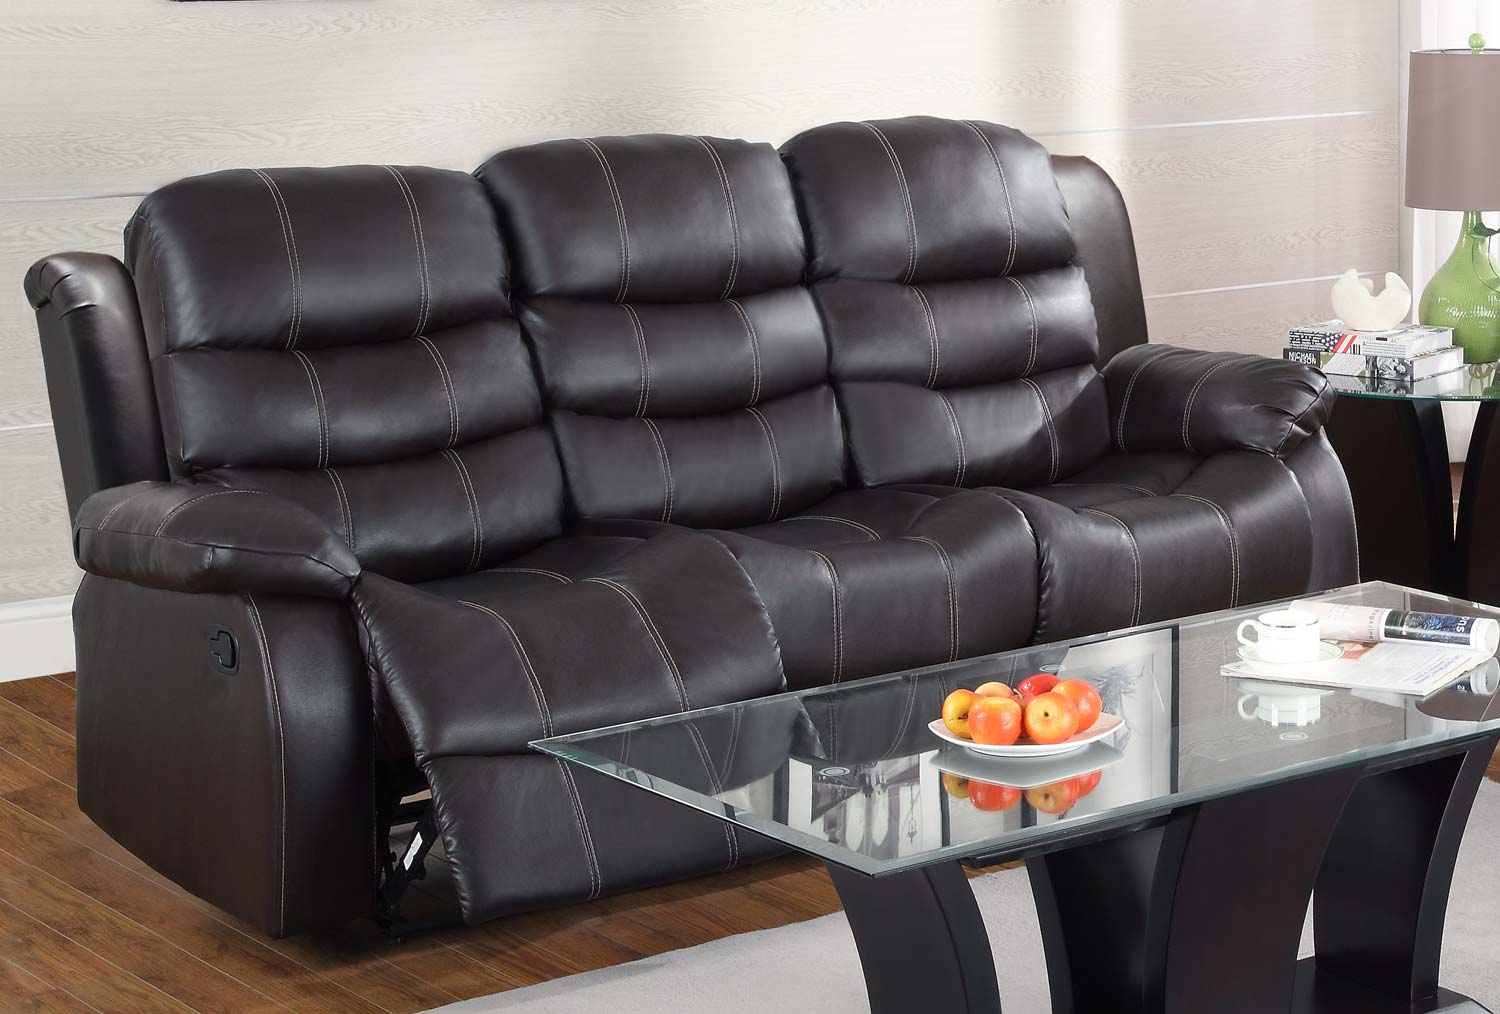 Learn more about Homelegance BRW Smithee Sofa Dual Recliner Dark Bonded Leather Match Product Photo